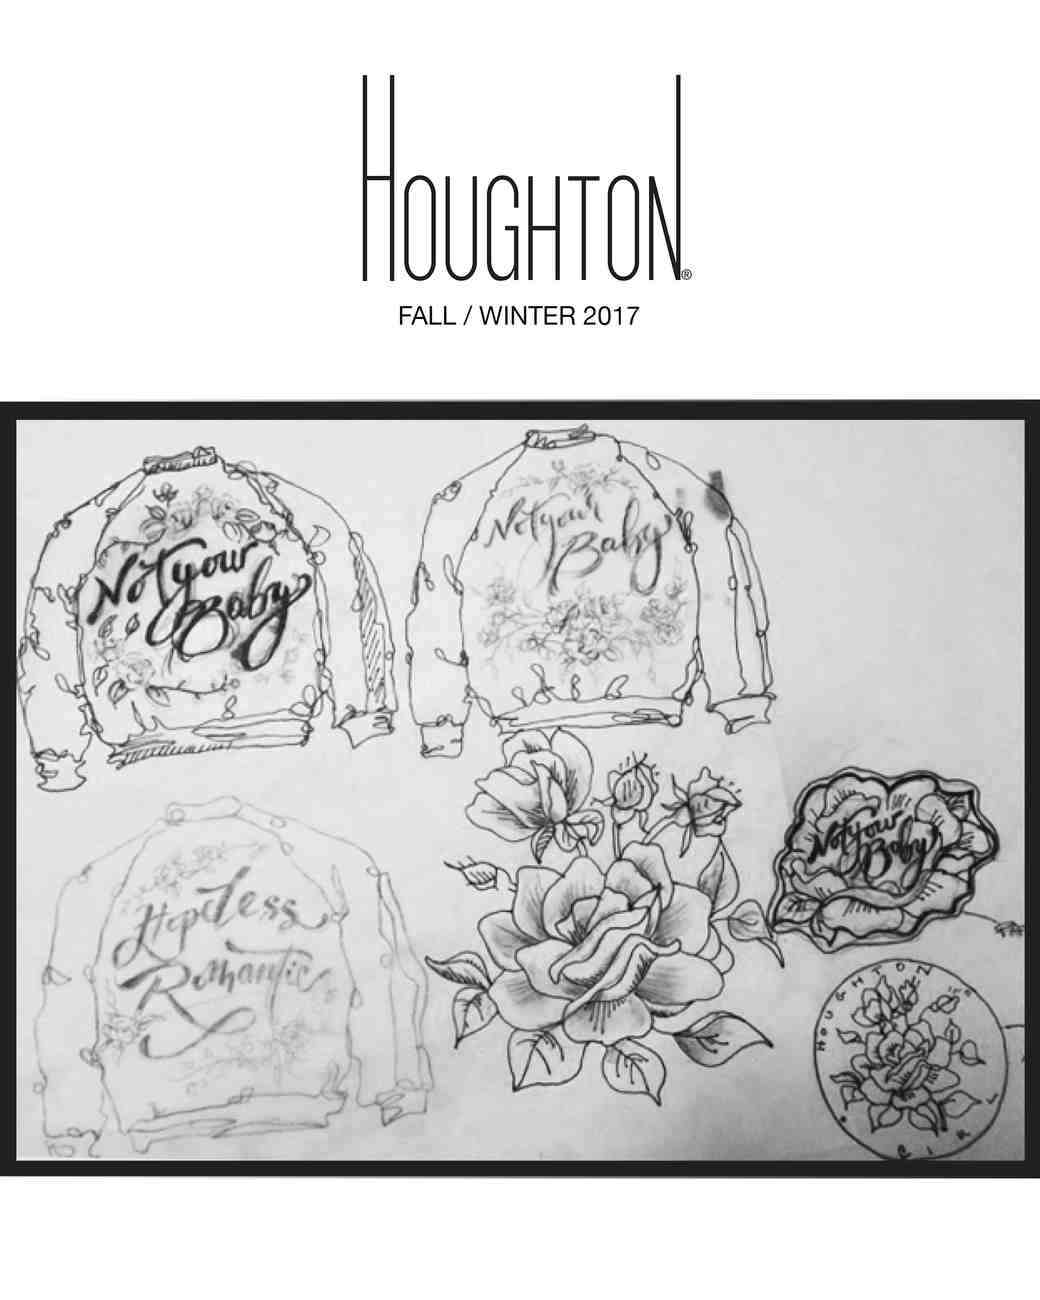 houghton-fall-2017-exclusive-wedding-dress-sketch-0916.jpg